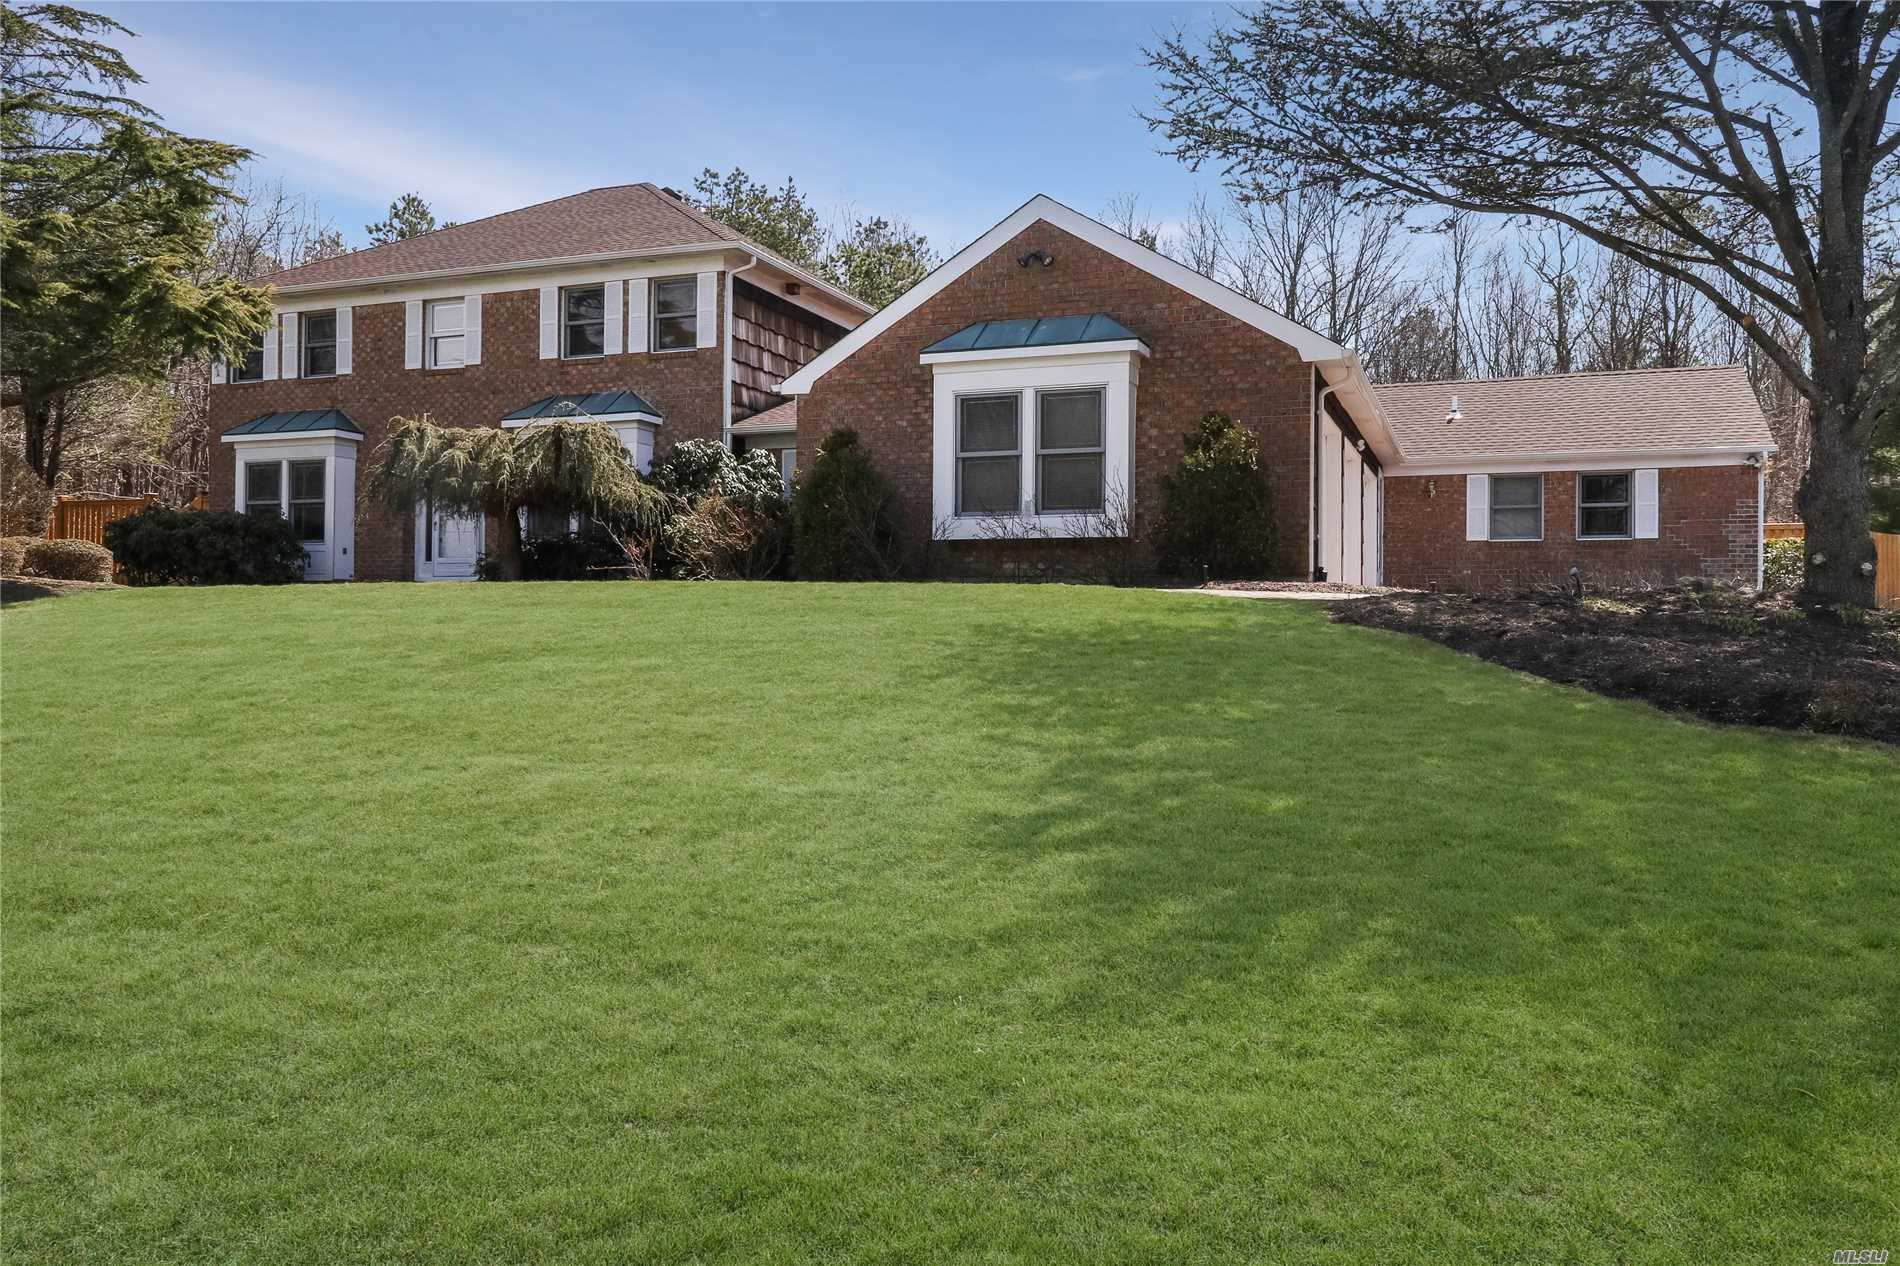 Luxurious 2 Family Style Living In This Updated Expansive Brick Faced 5 Bedroom Center Hall Colonial W/Rare 3 Car Garage, Diamond 3 Bedroom, 2 Bath Ranch Attached In The Prestigious Country Woods Development. Nestled On .60 Private Premium Lot Backing A Mature Oversized Treed Green Belt With Gorgeous Panoramic Scenic Park Like Views. Boasts A Country Club Fenced Yard With In Ground Pool, Cascading Rock Waterfall, Sprawling Paver Patio, Awning, Lush Landscaping And More!